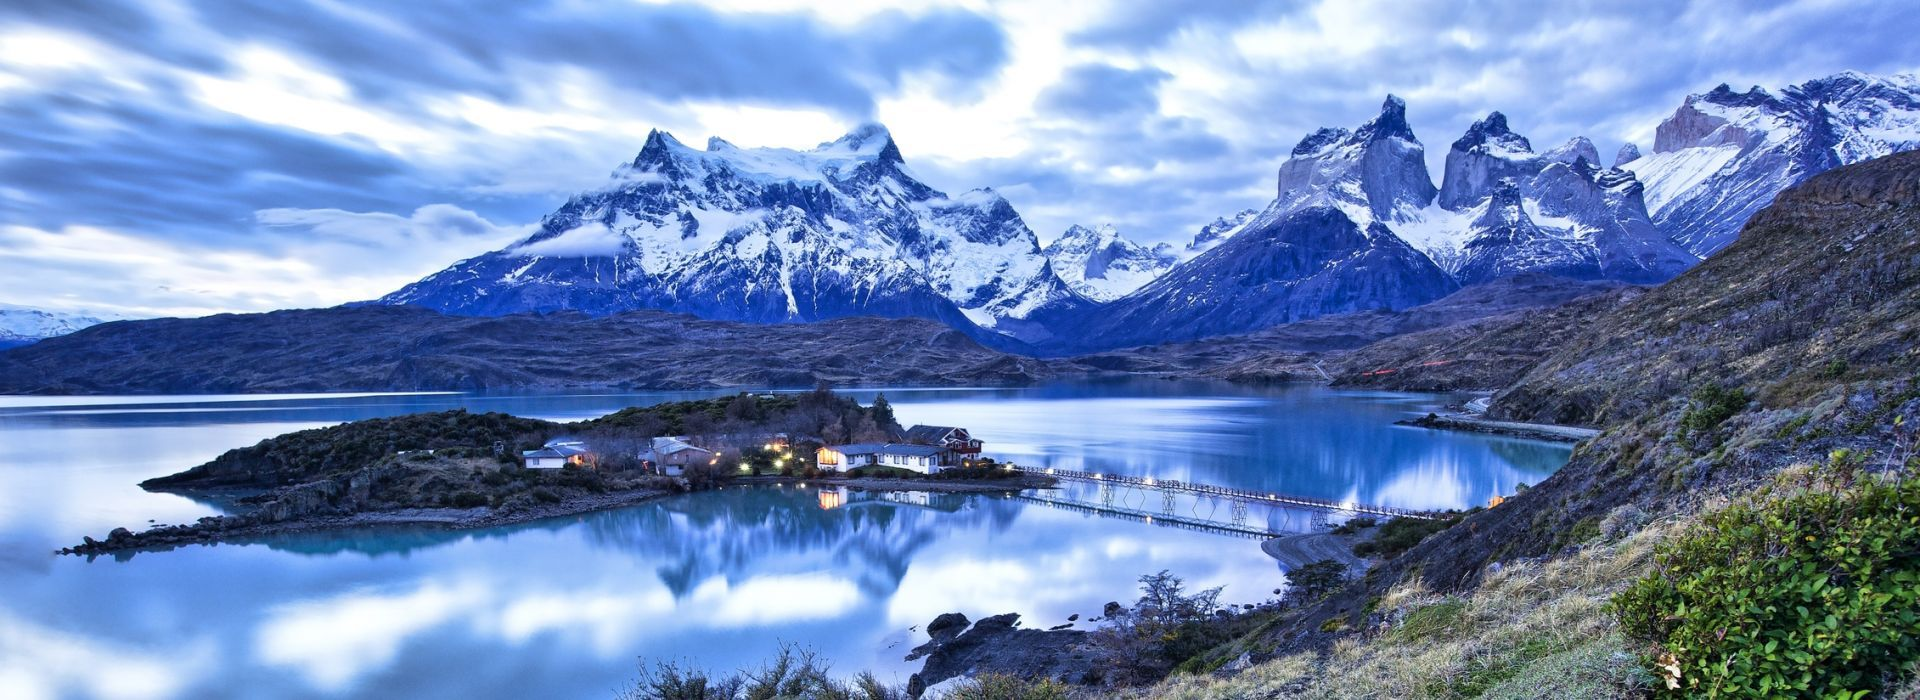 Lagoons Tours in Chile